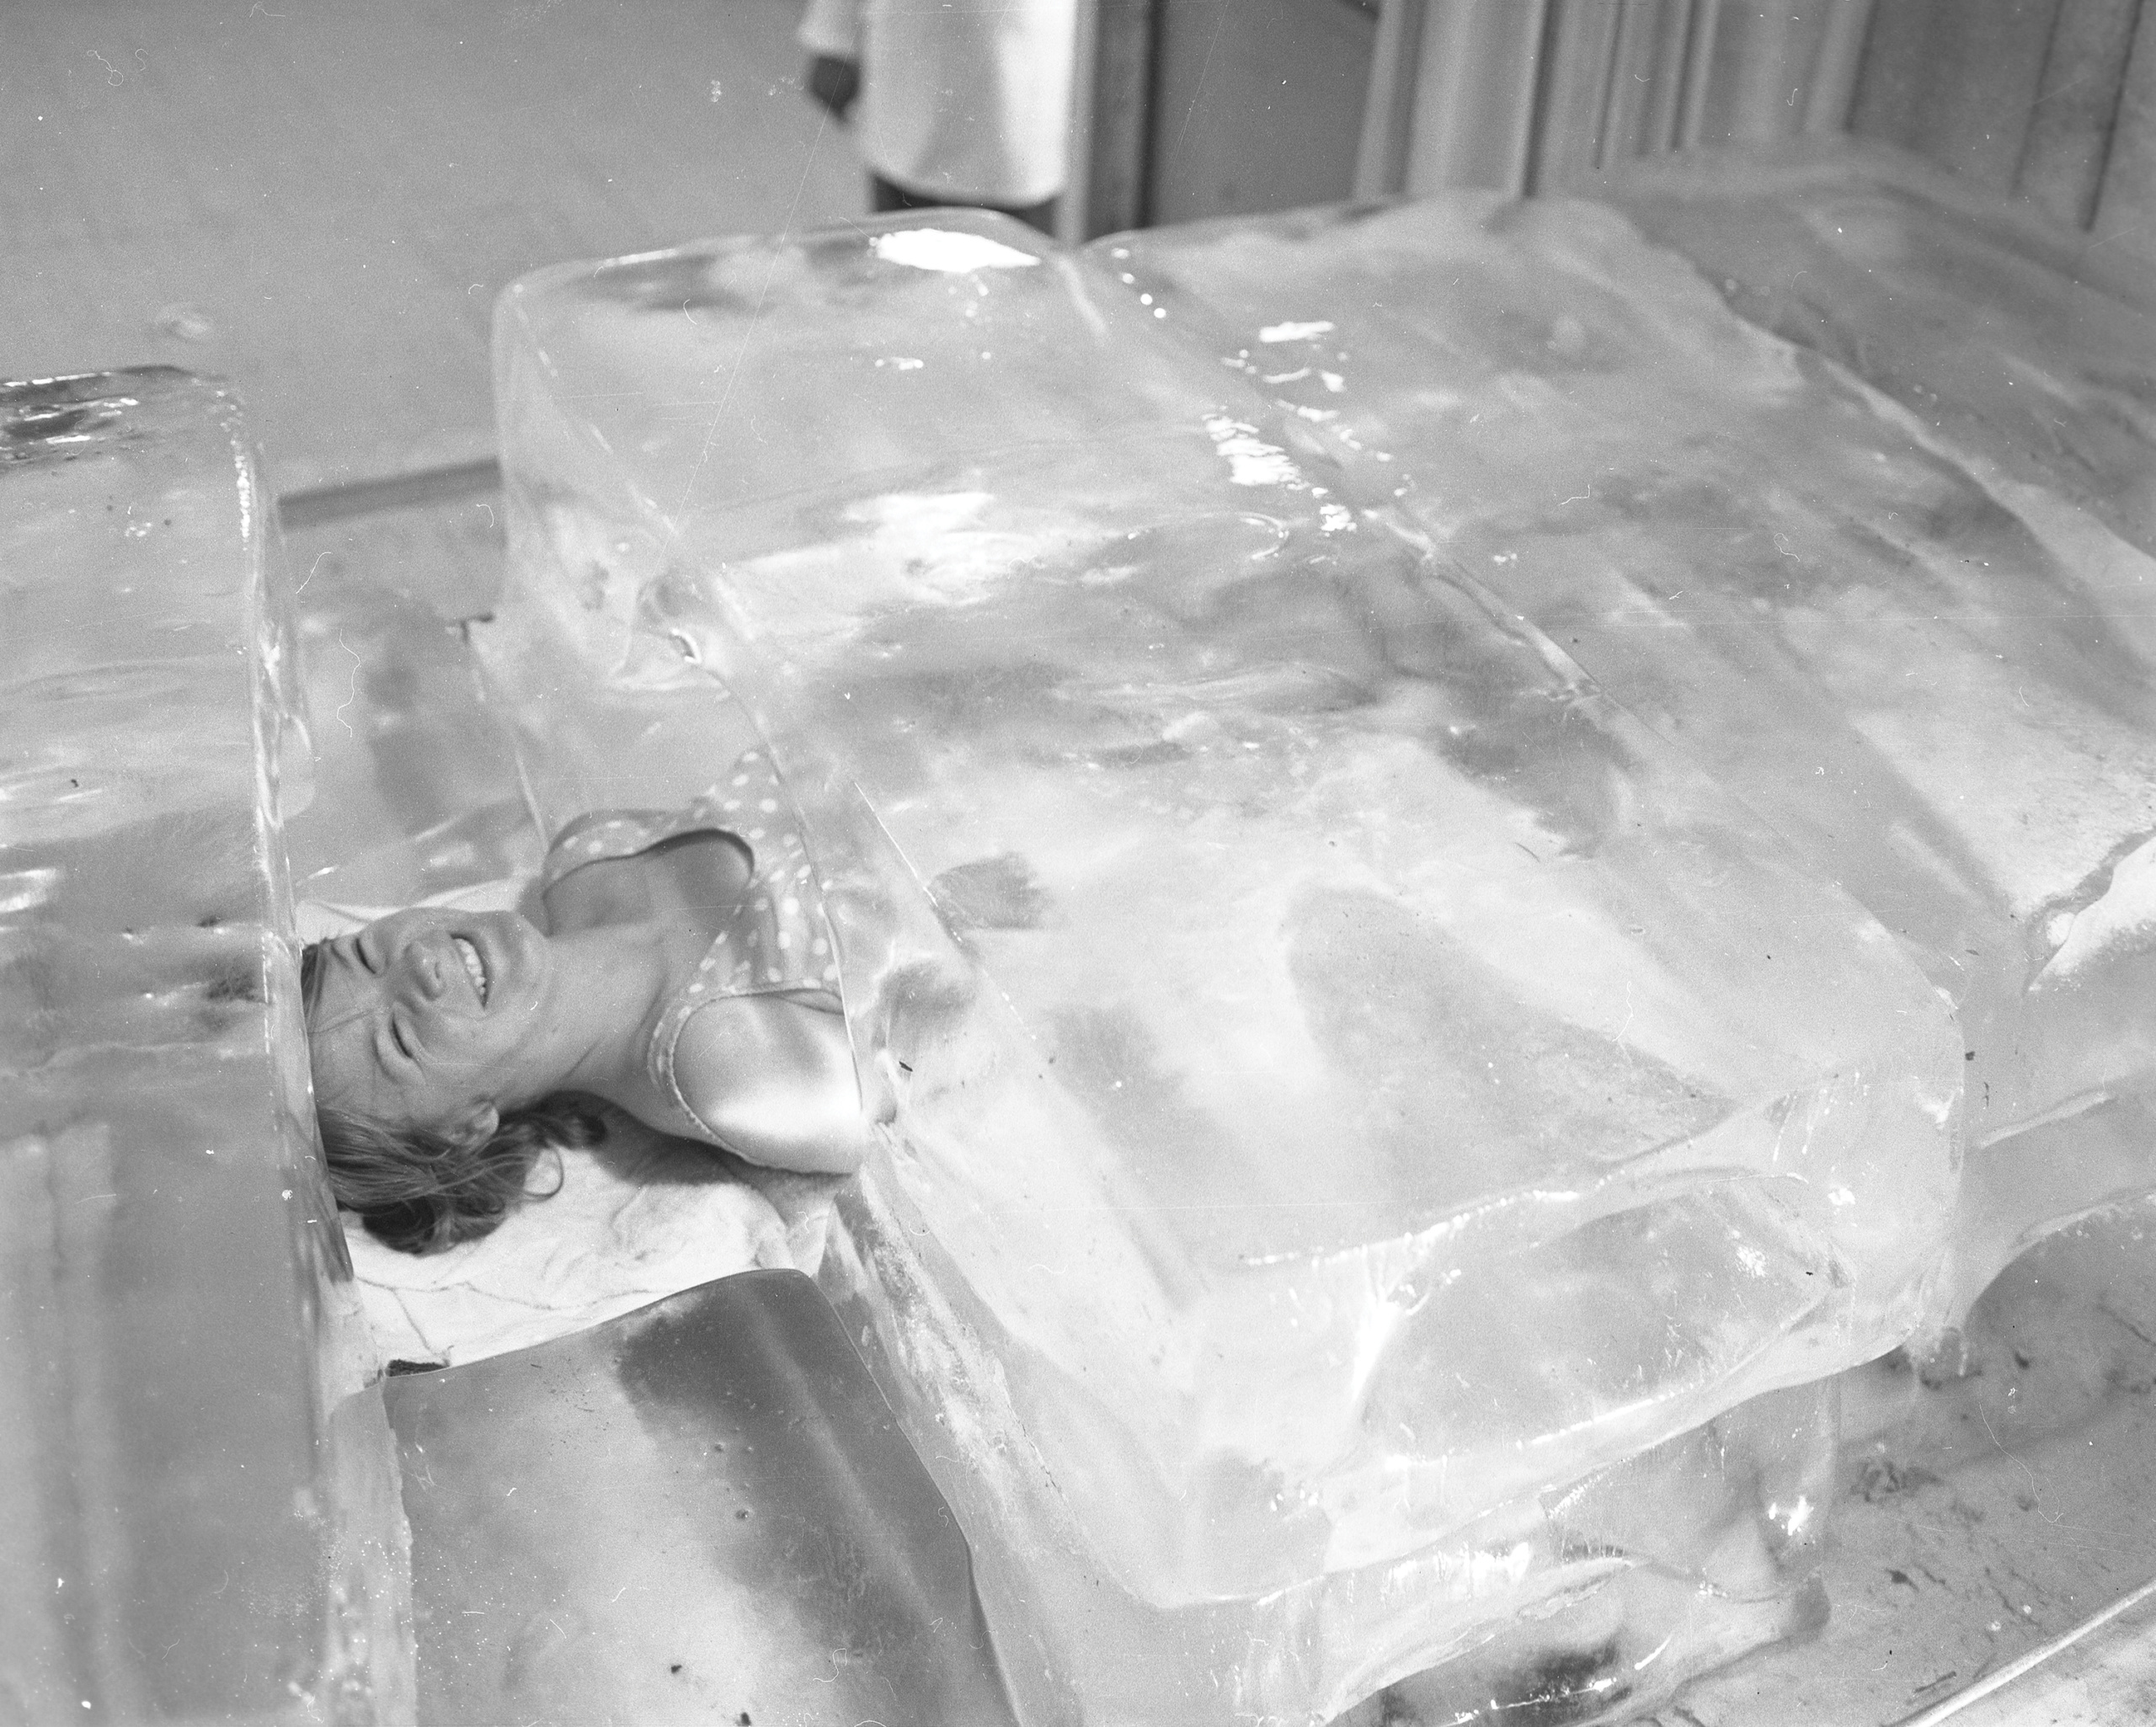 Girl in Ice Block, August 20, 1966, Canadian National Exhibition Archives, MG5-F1620-I4. Courtesy of the CNEA